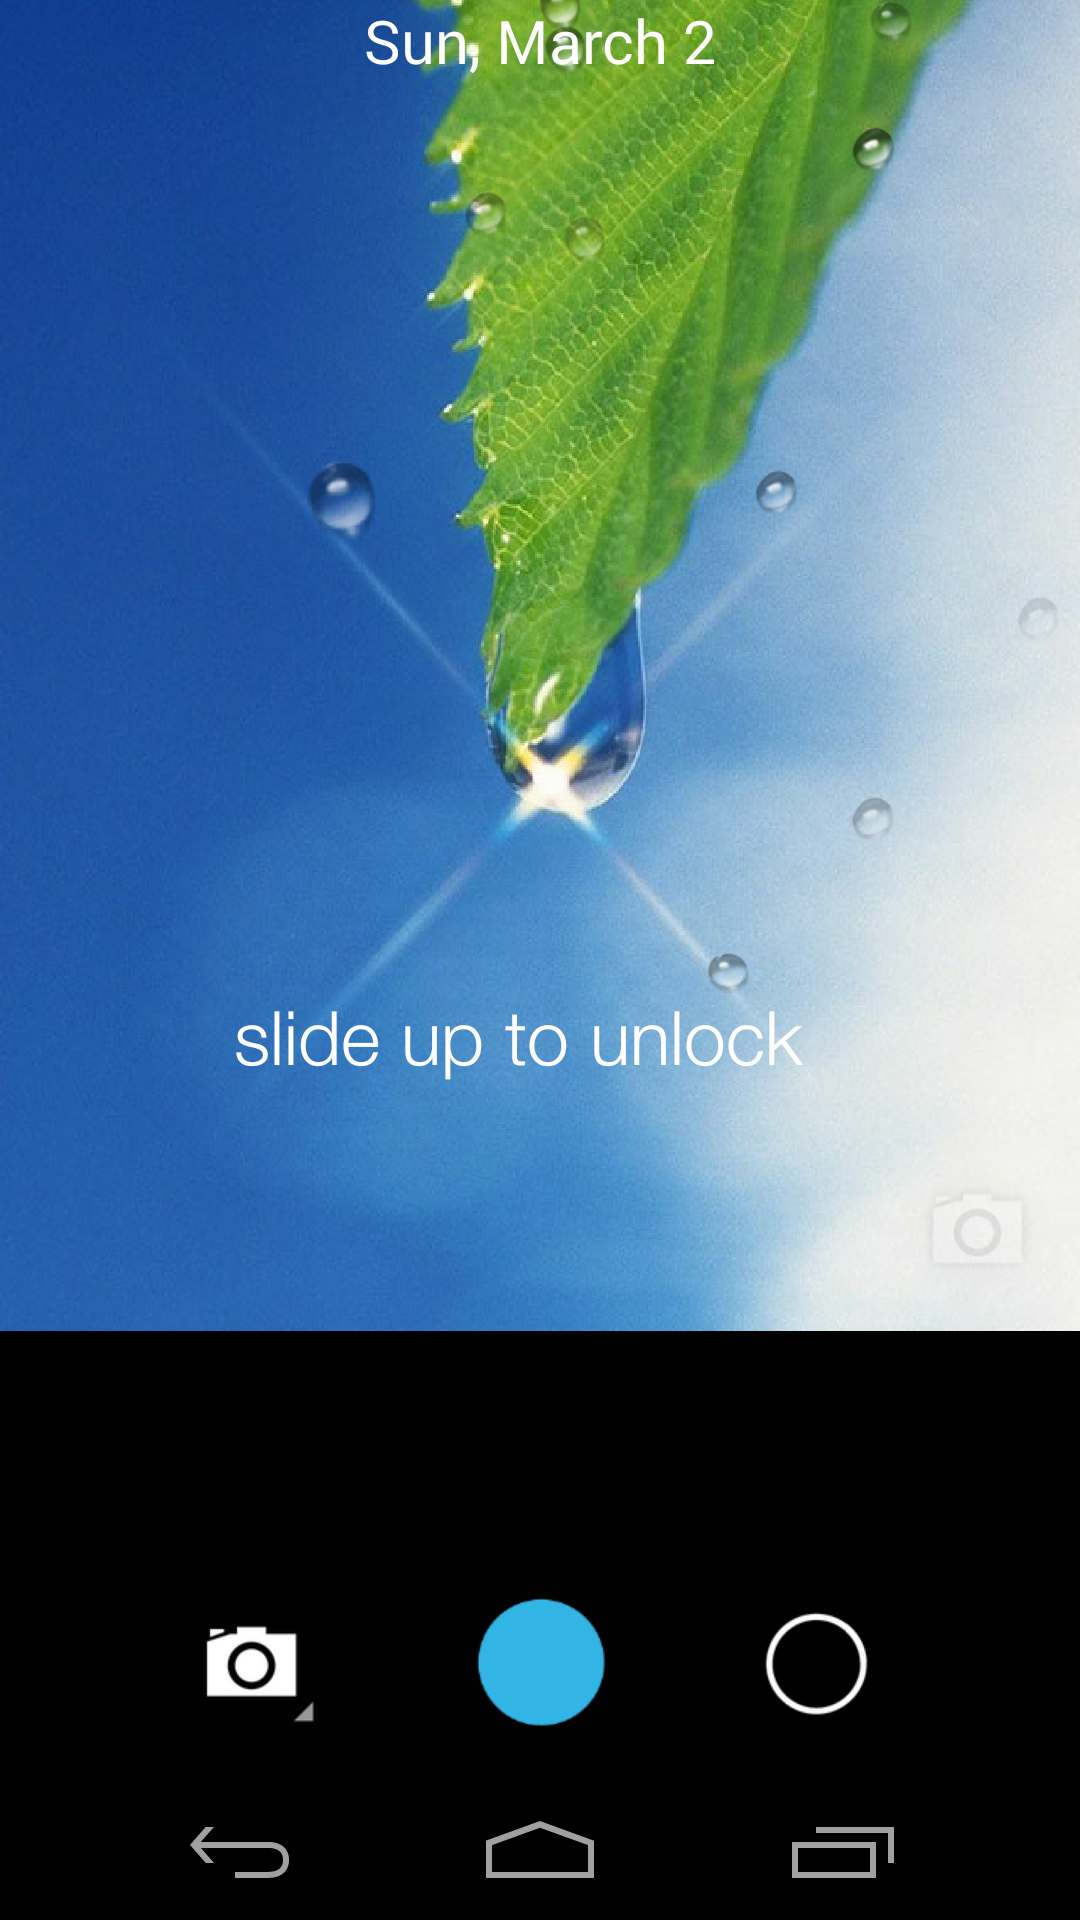 Amazon.com: Lock screen(live wallpaper): Appstore for Android